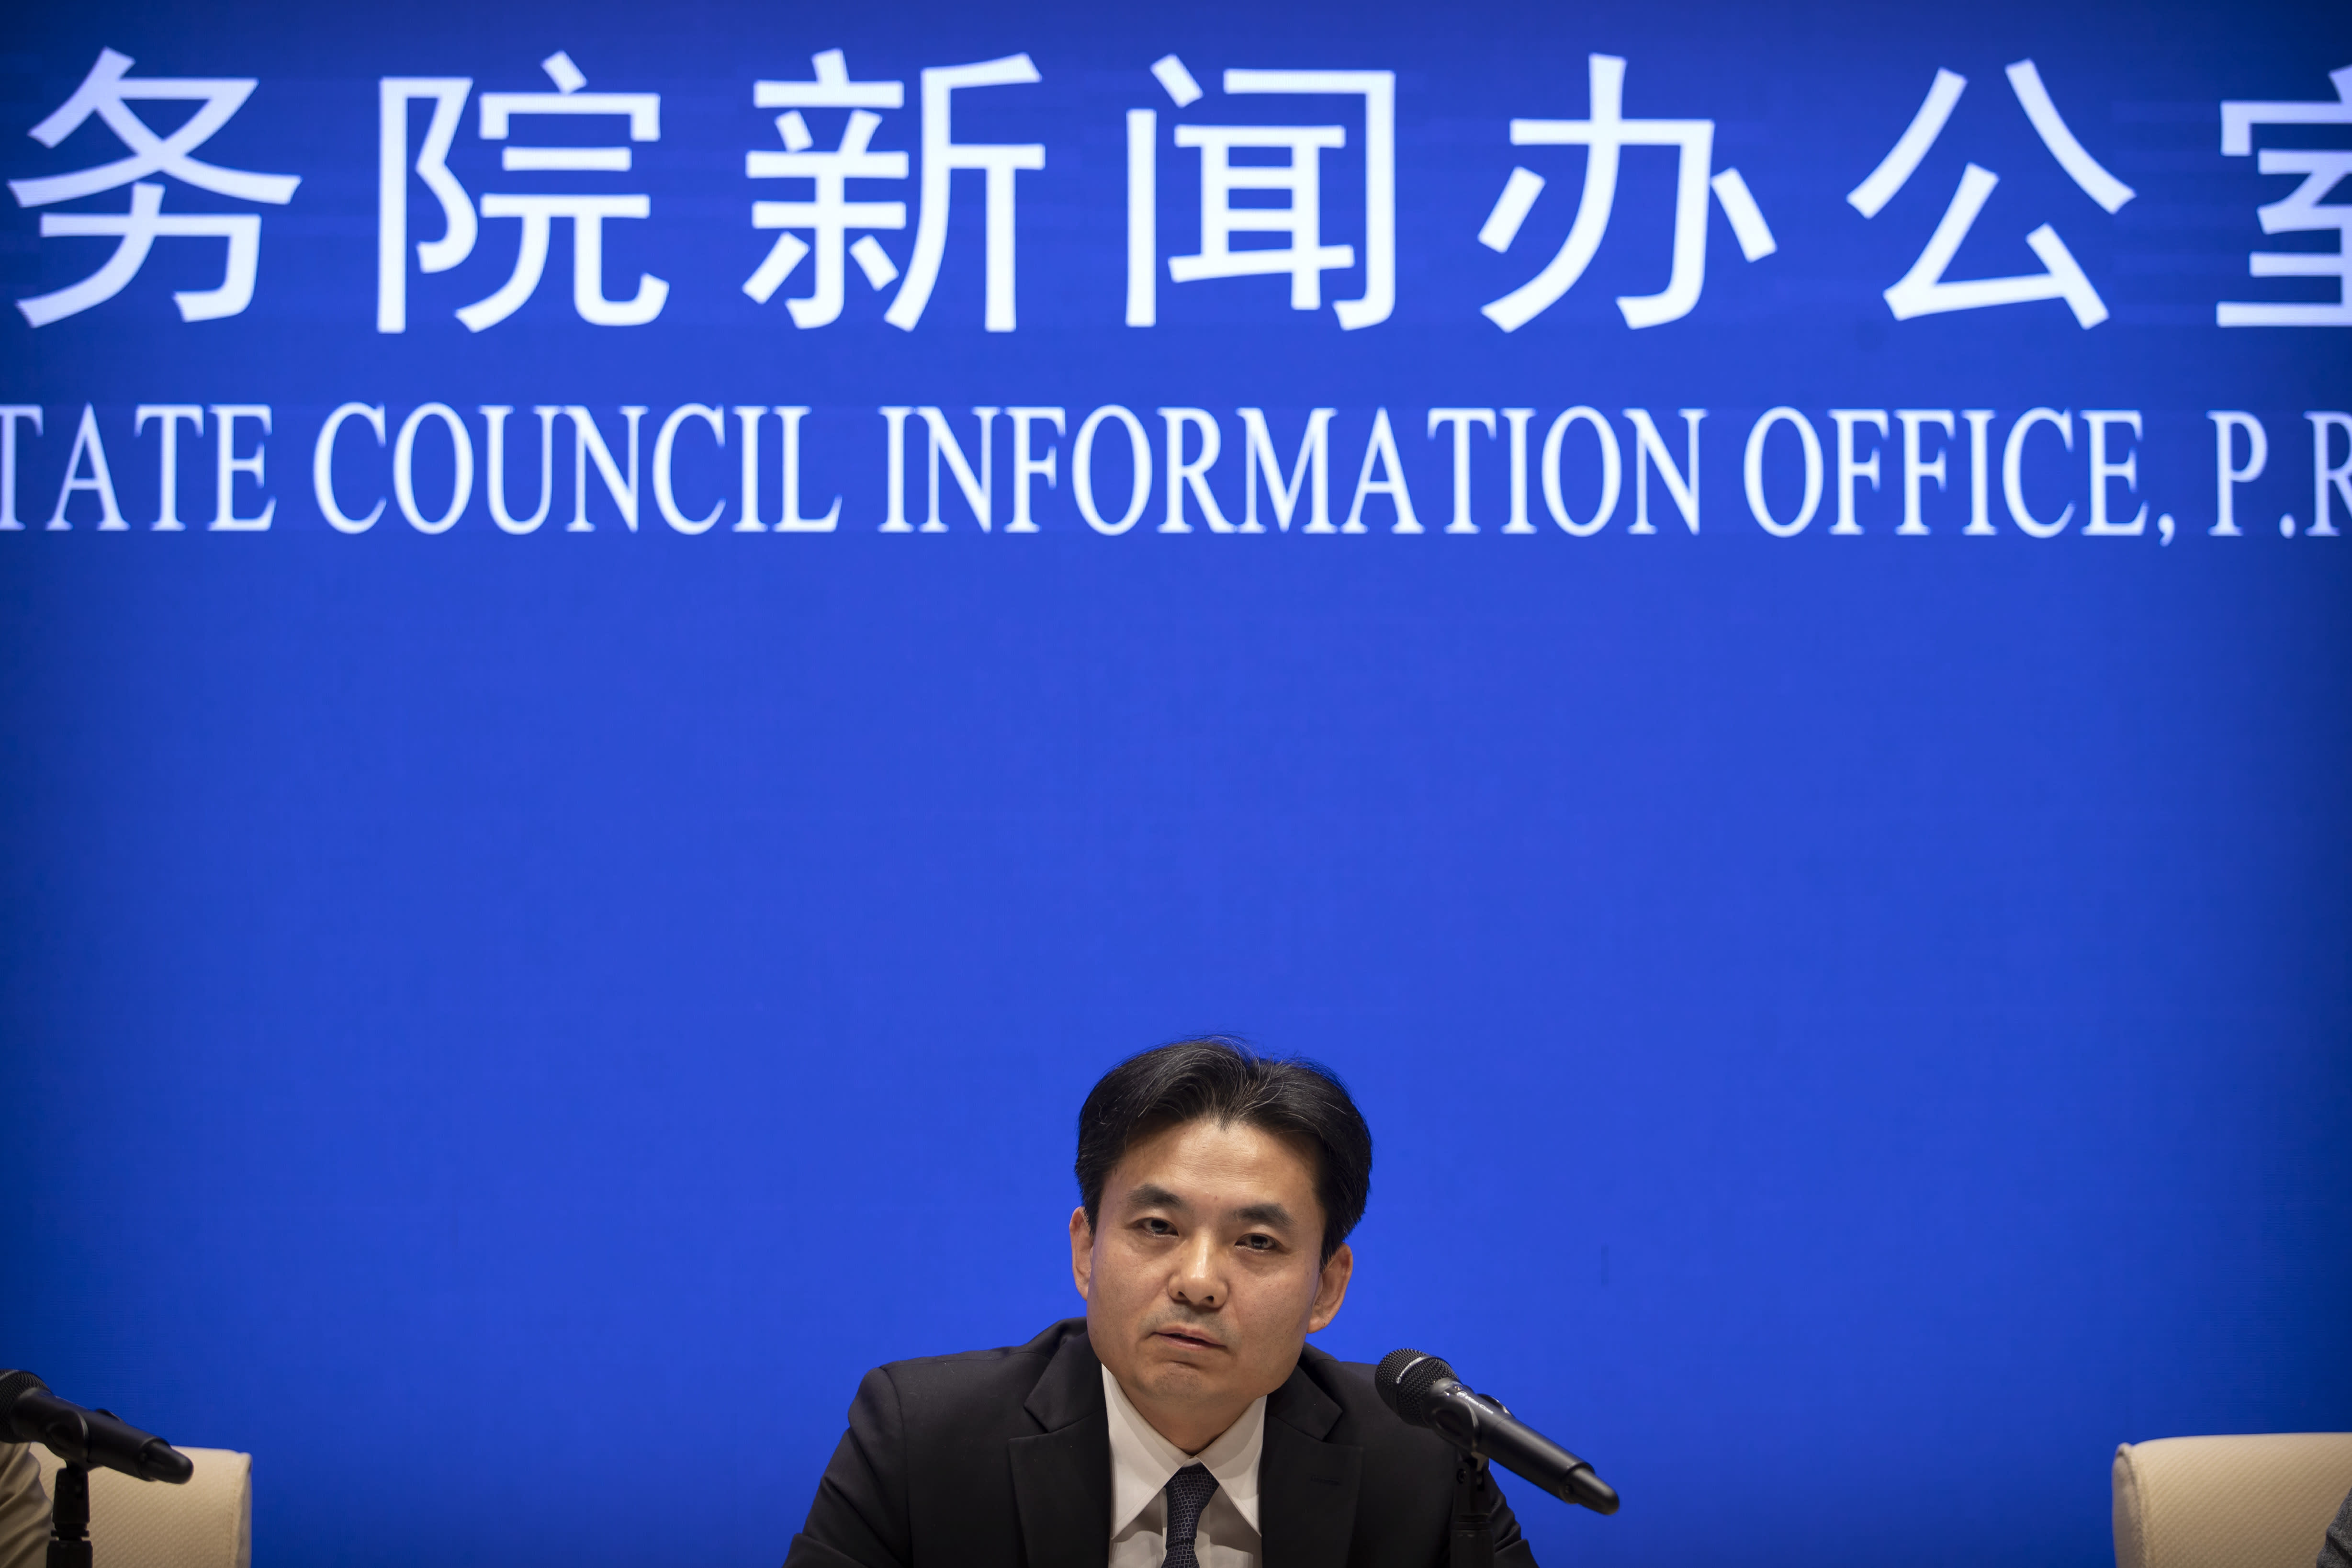 """Yang Guang, spokesman for the Chinese Cabinet's Hong Kong and Macao Affairs Office, speaks during a press conference in Beijing, Tuesday, Aug. 6, 2019. A Chinese official responsible for Hong Kong affairs says punishment for those behind weeks of sometimes violent protests in the Chinese special administrative region is """"only a matter of time."""" (AP Photo/Mark Schiefelbein)"""